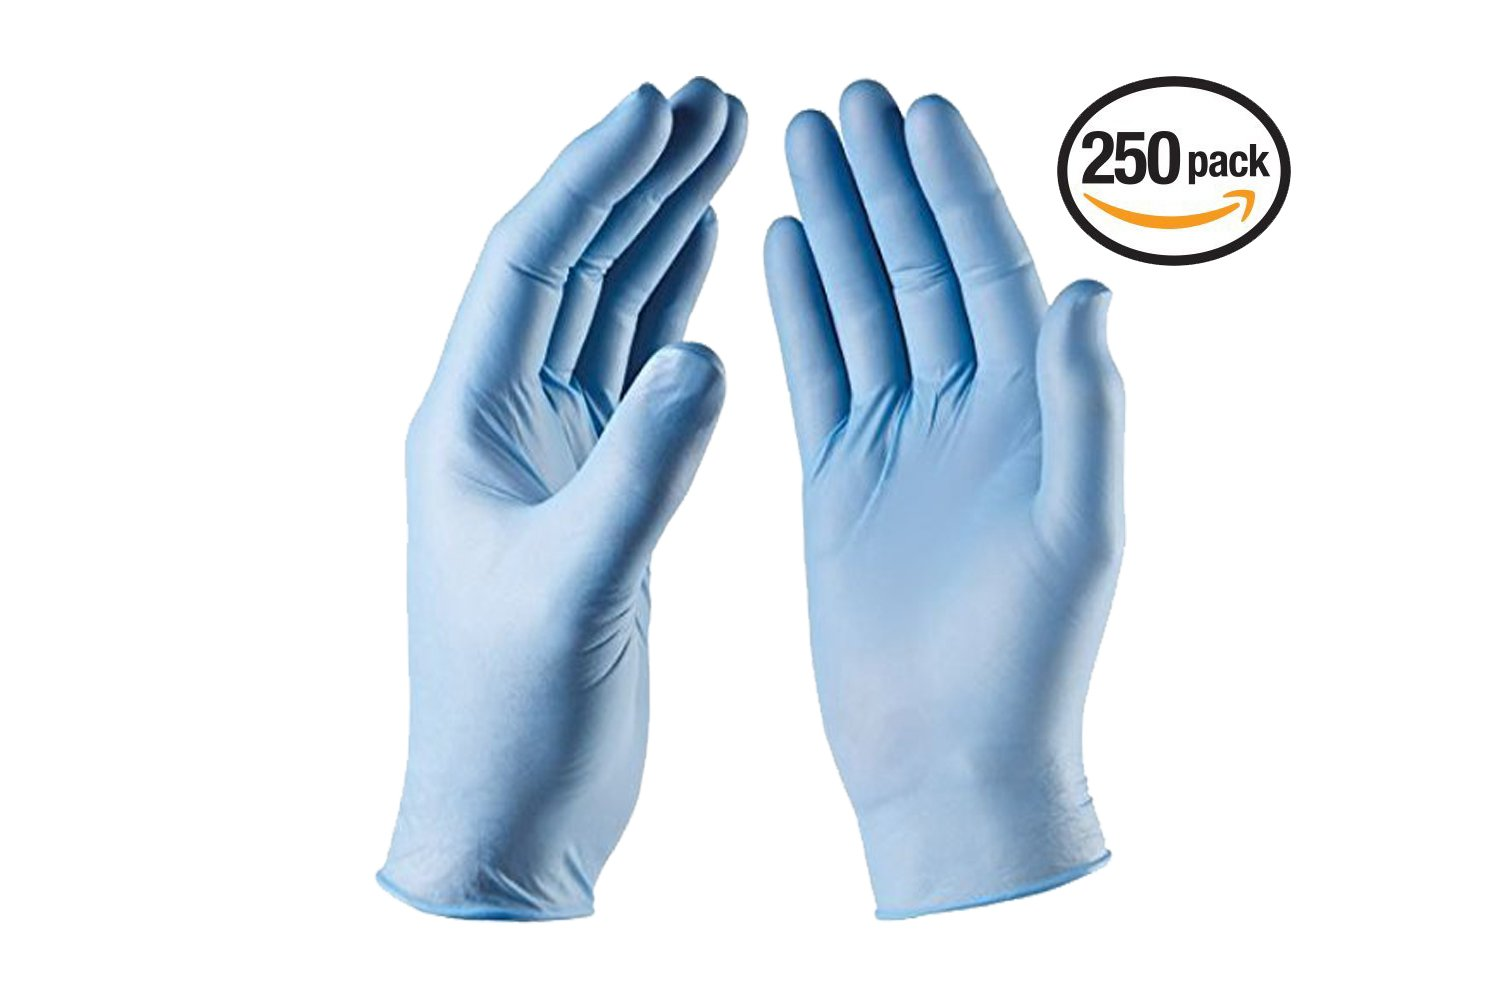 VIVID Nitrile Blue Medical Grade Non-Sterile Exam Gloves – Non-Latex, Powder, Rubber Free – For Dental, Medical, Food Handling, Automotive, Art, Craft, Home Use – 250 Count, Size Medium, BlueTouch